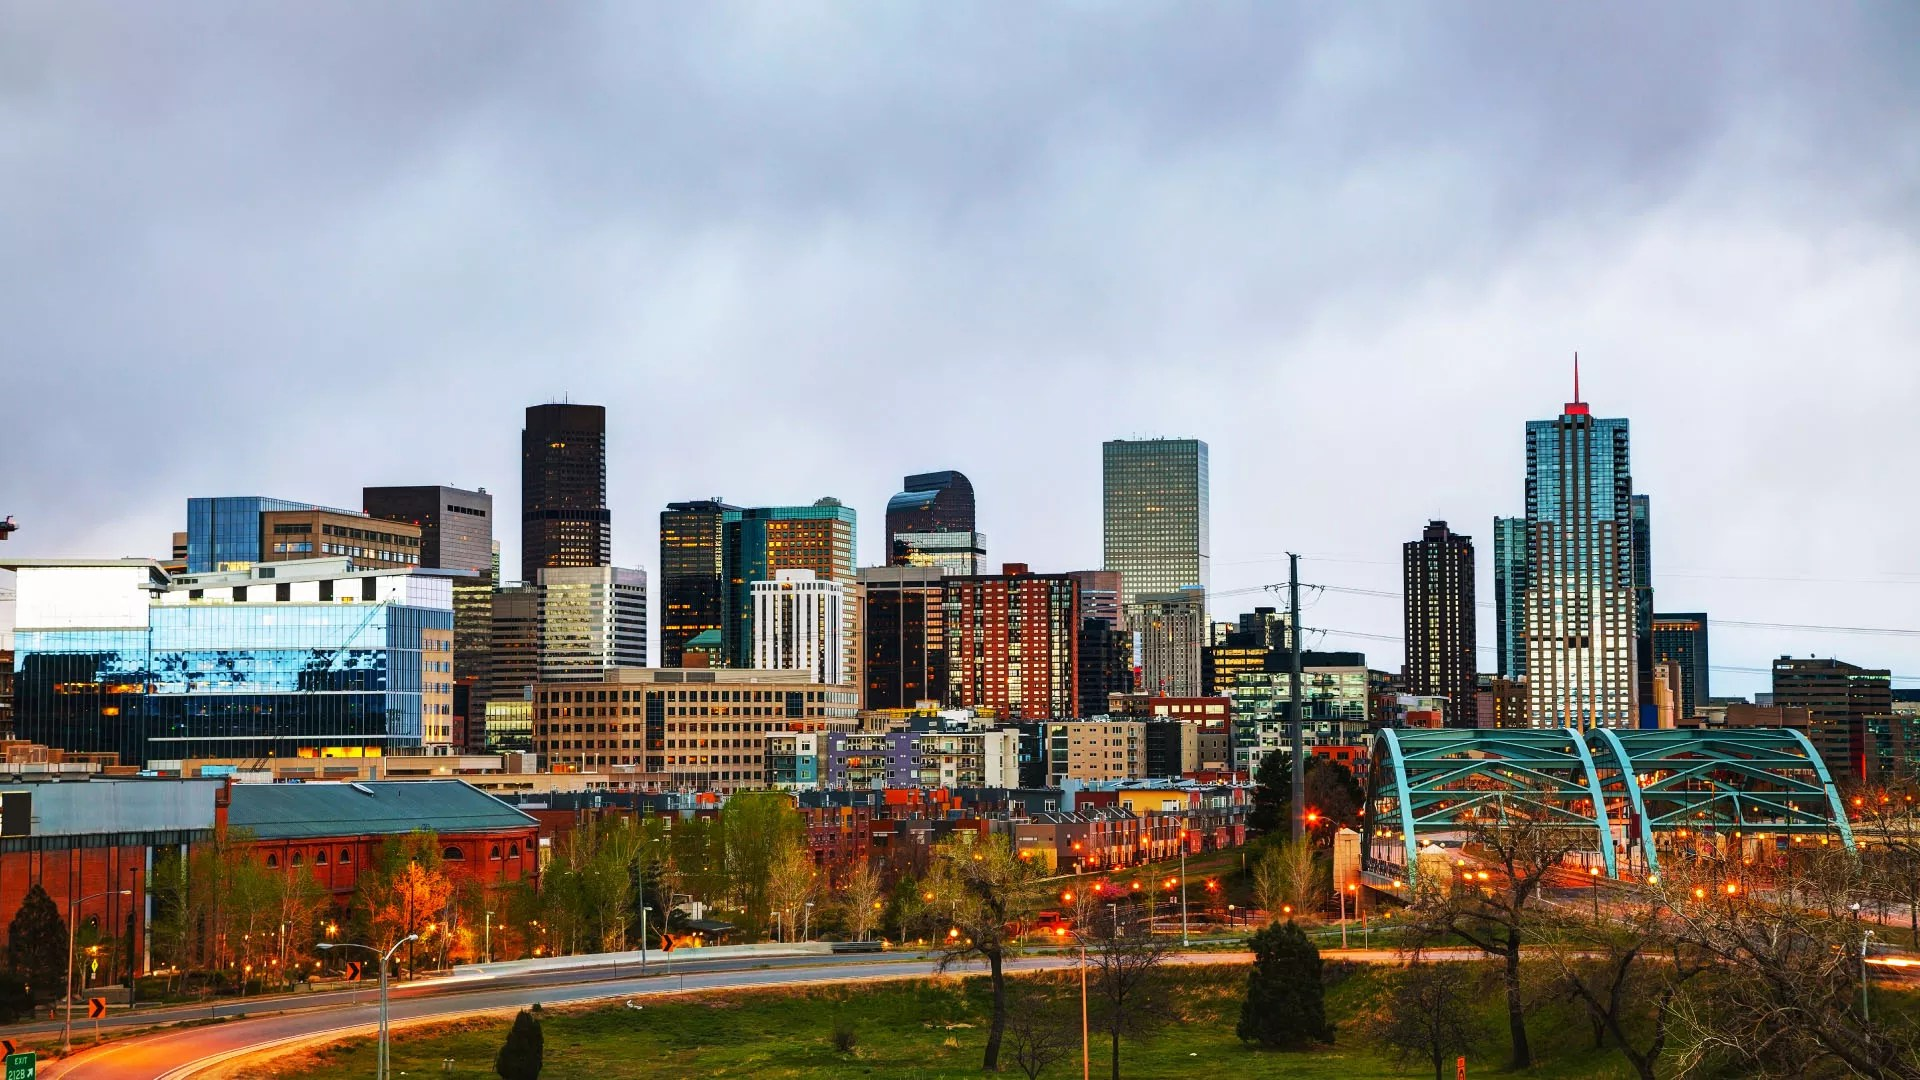 17 Things to Know About Living in Denver via @extraspace